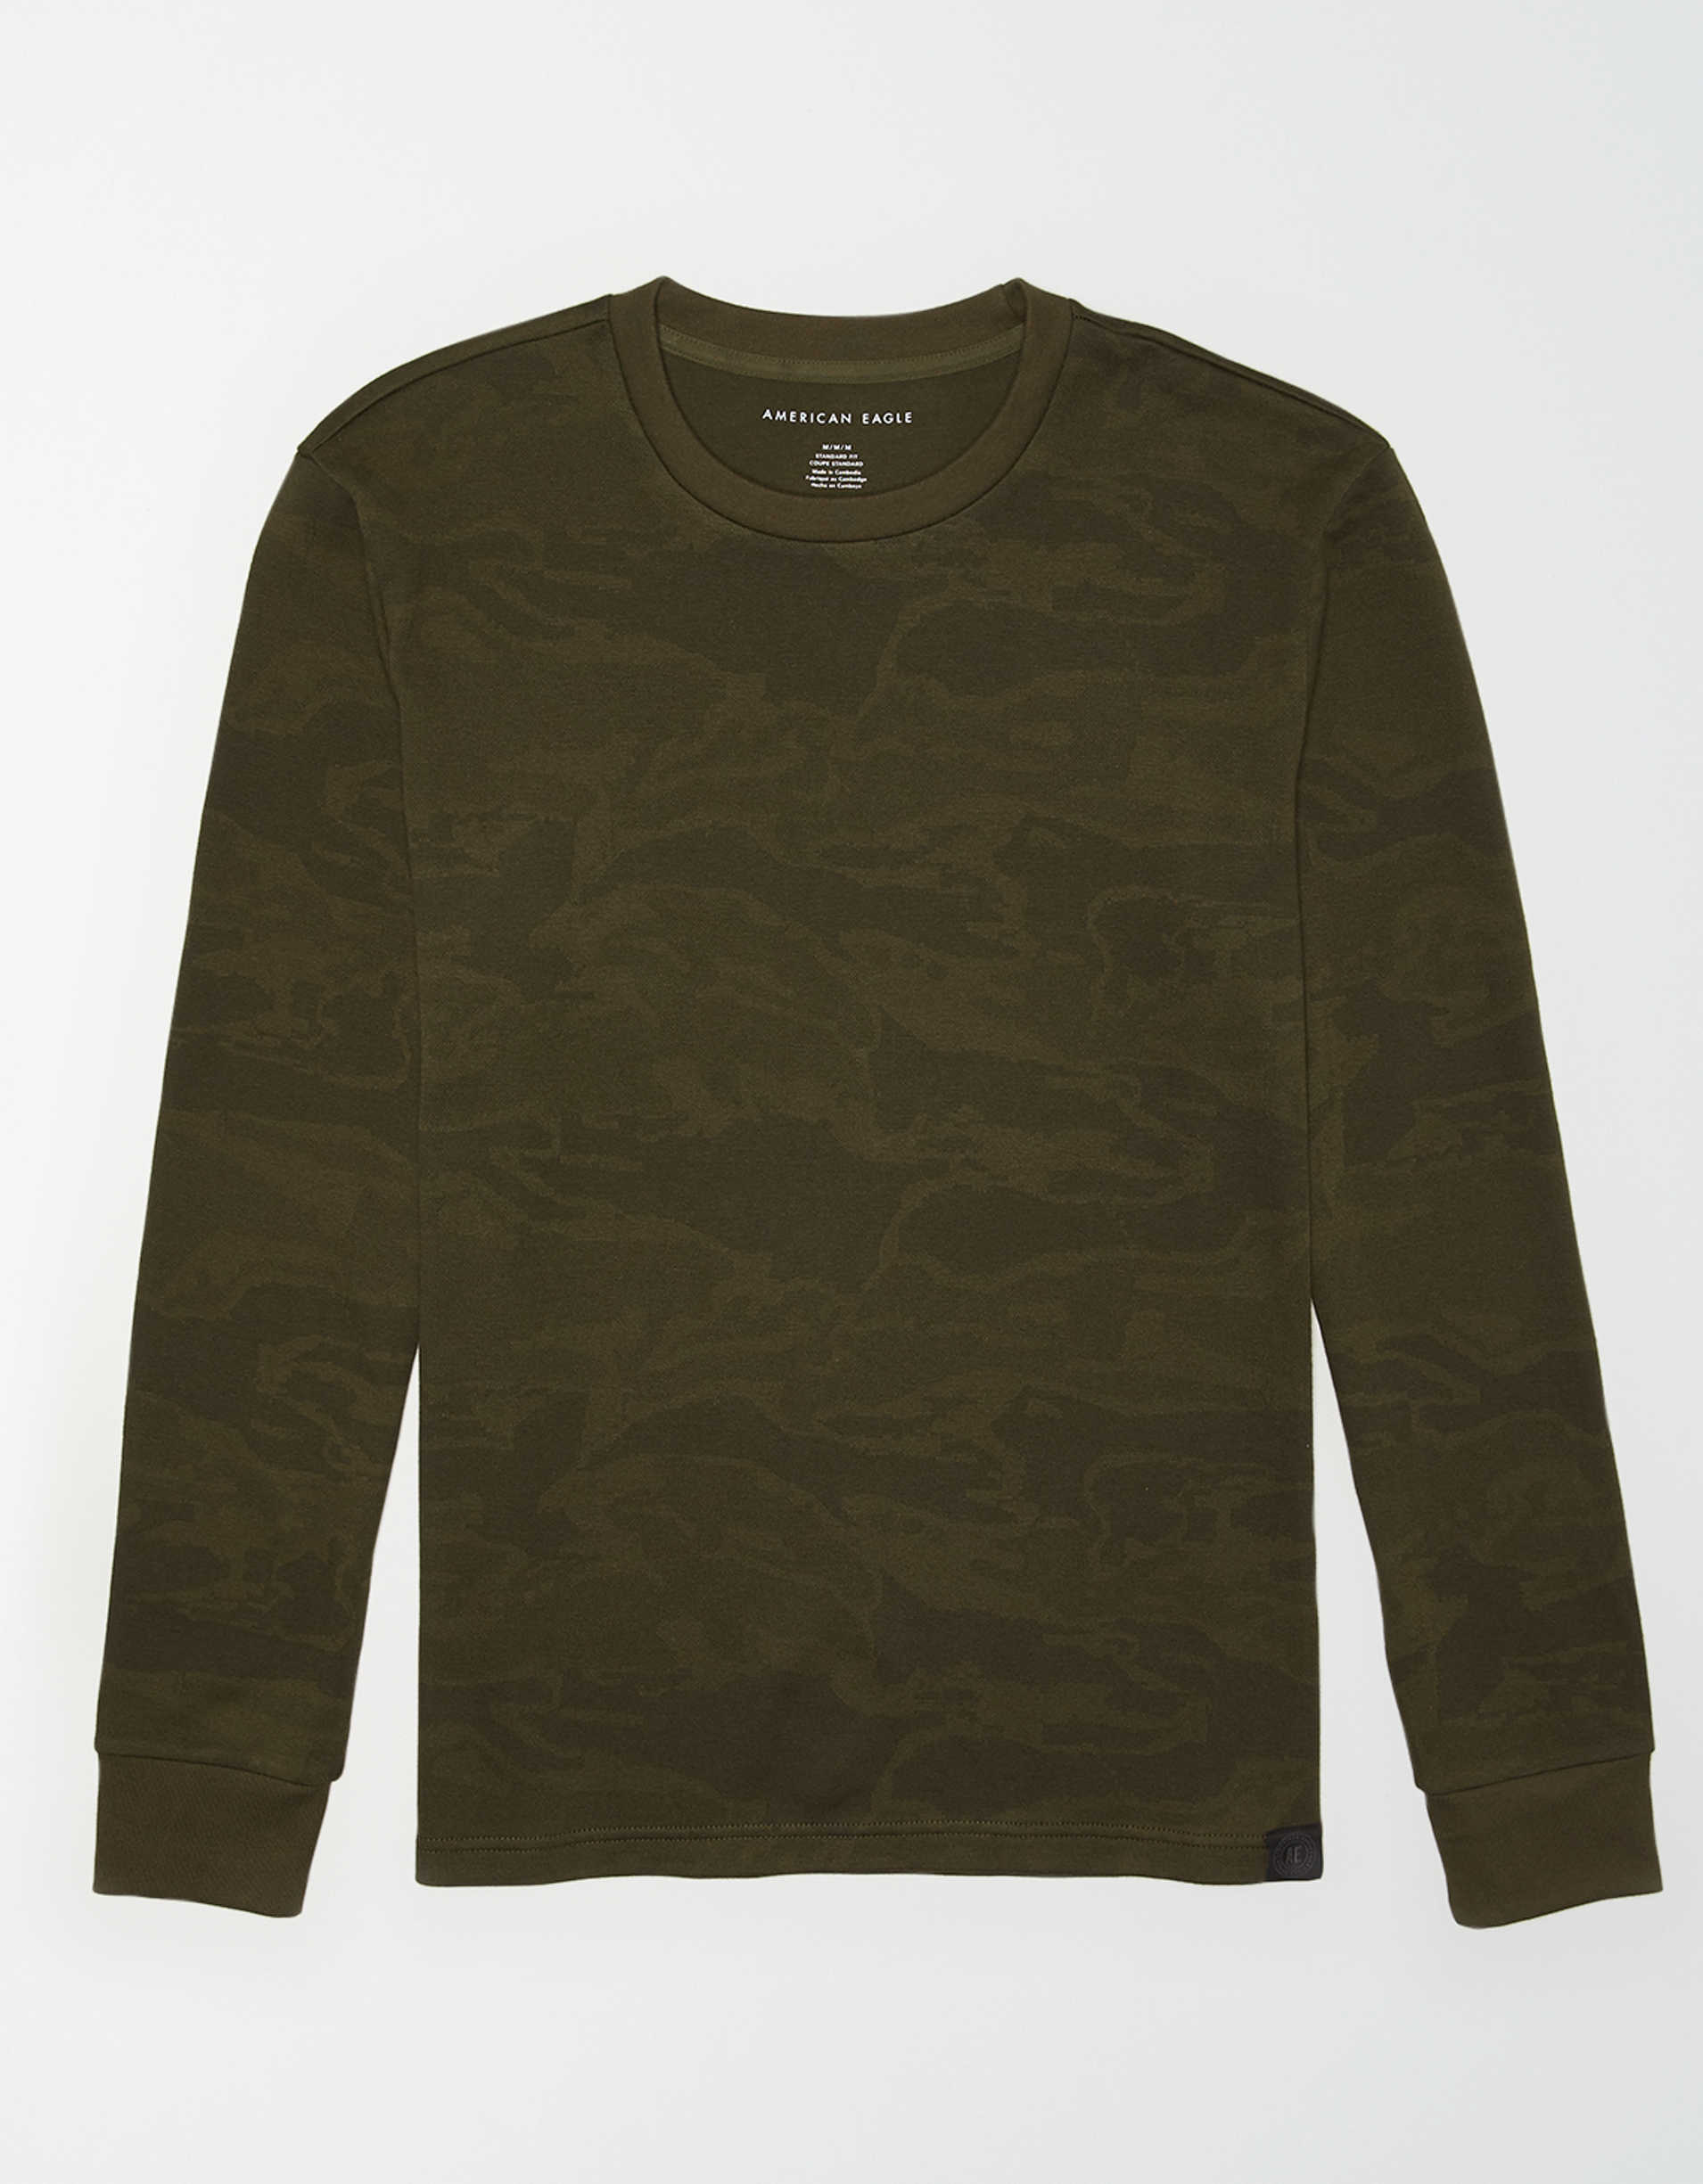 AE Long Sleeve Camo T-Shirt